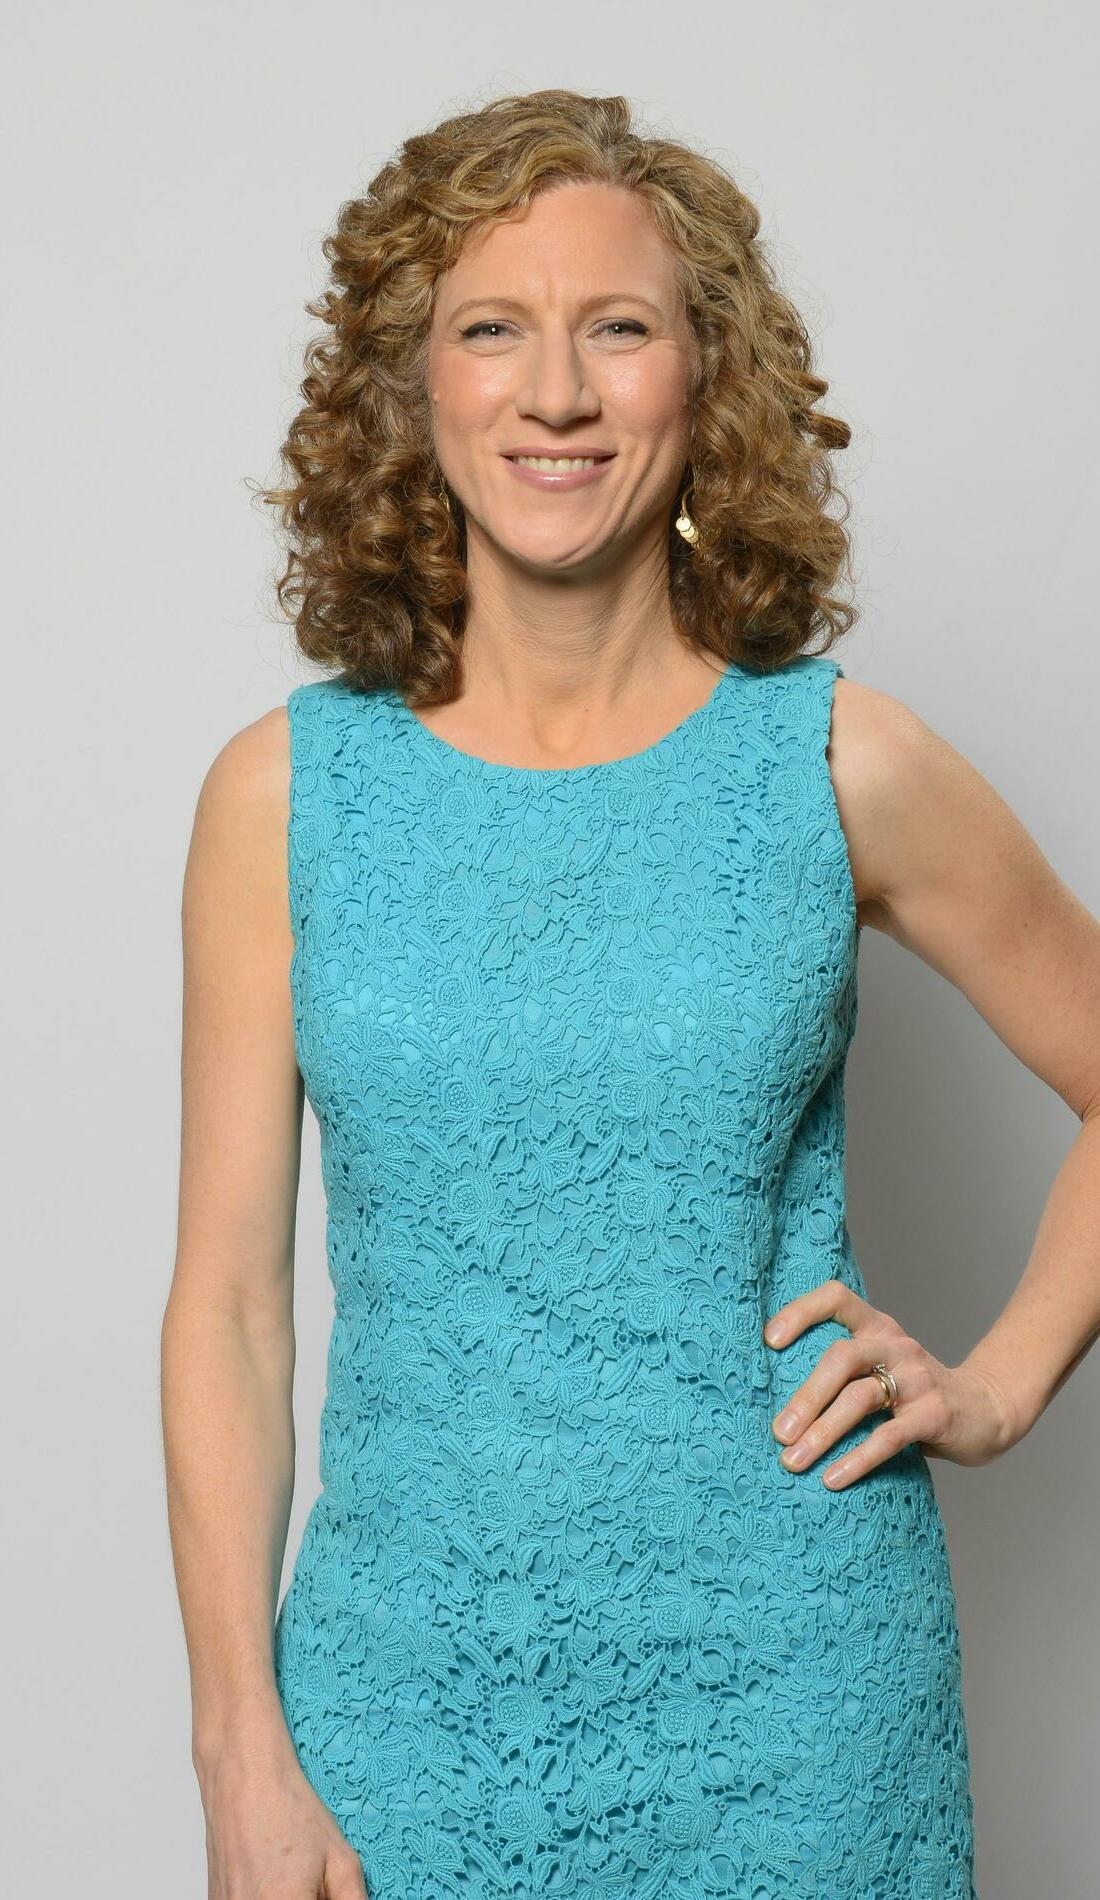 A Laurie Berkner live event